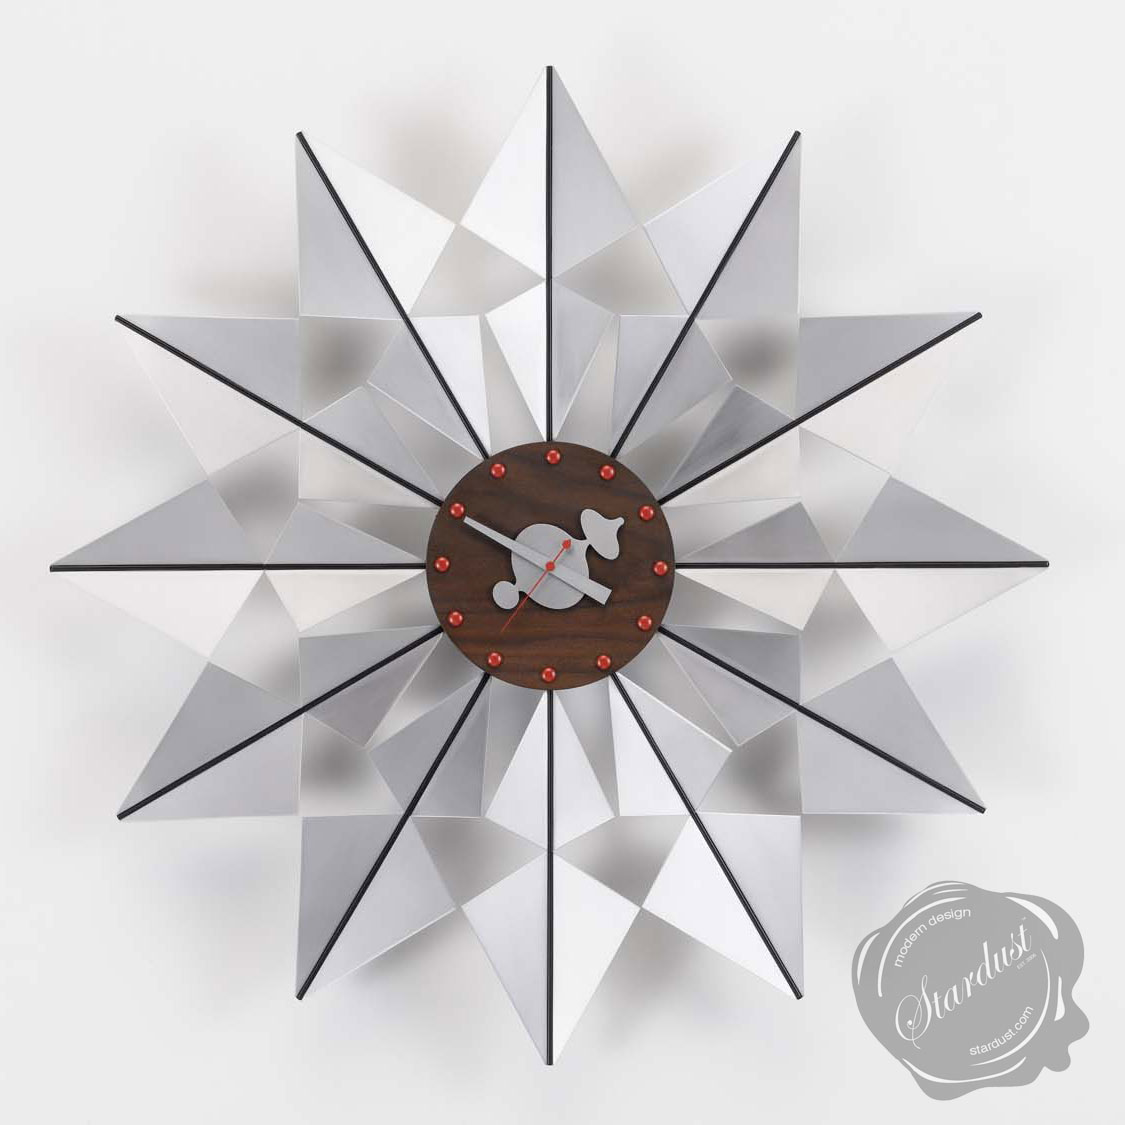 Butterfly George Nelson Clock Remarkable Midcentury Modern Clock Design By  George Nelson Clocks Walnut